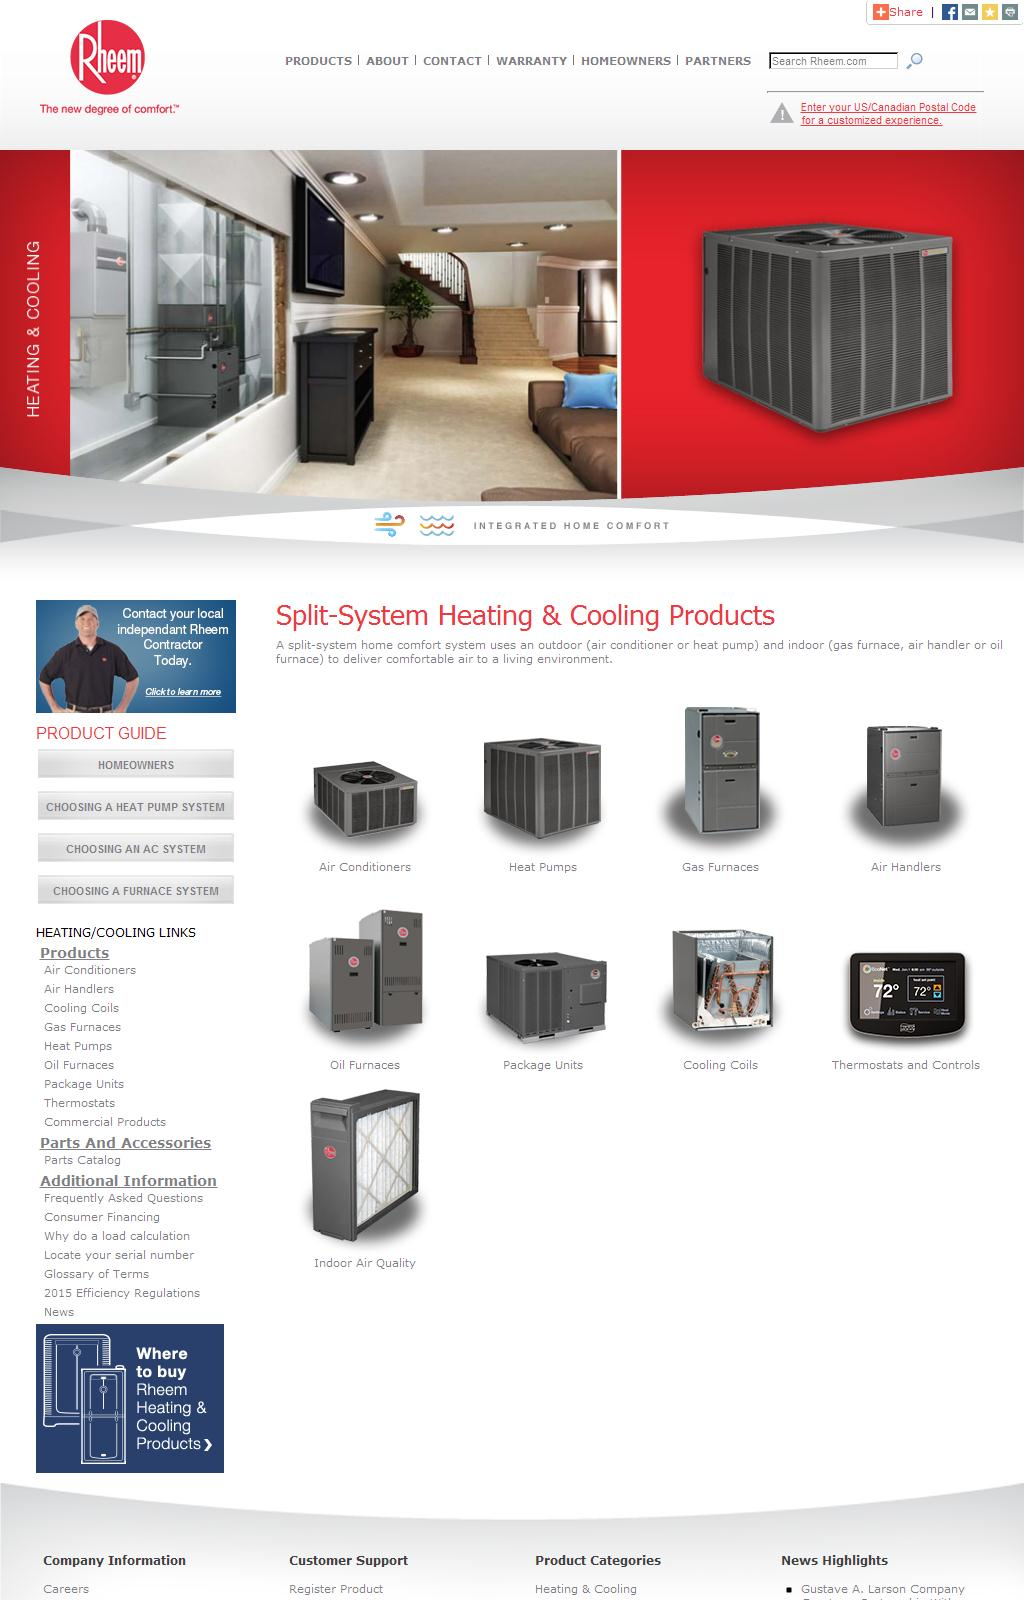 Air Conditioning, Heating and Cooling Solutions from Rheem